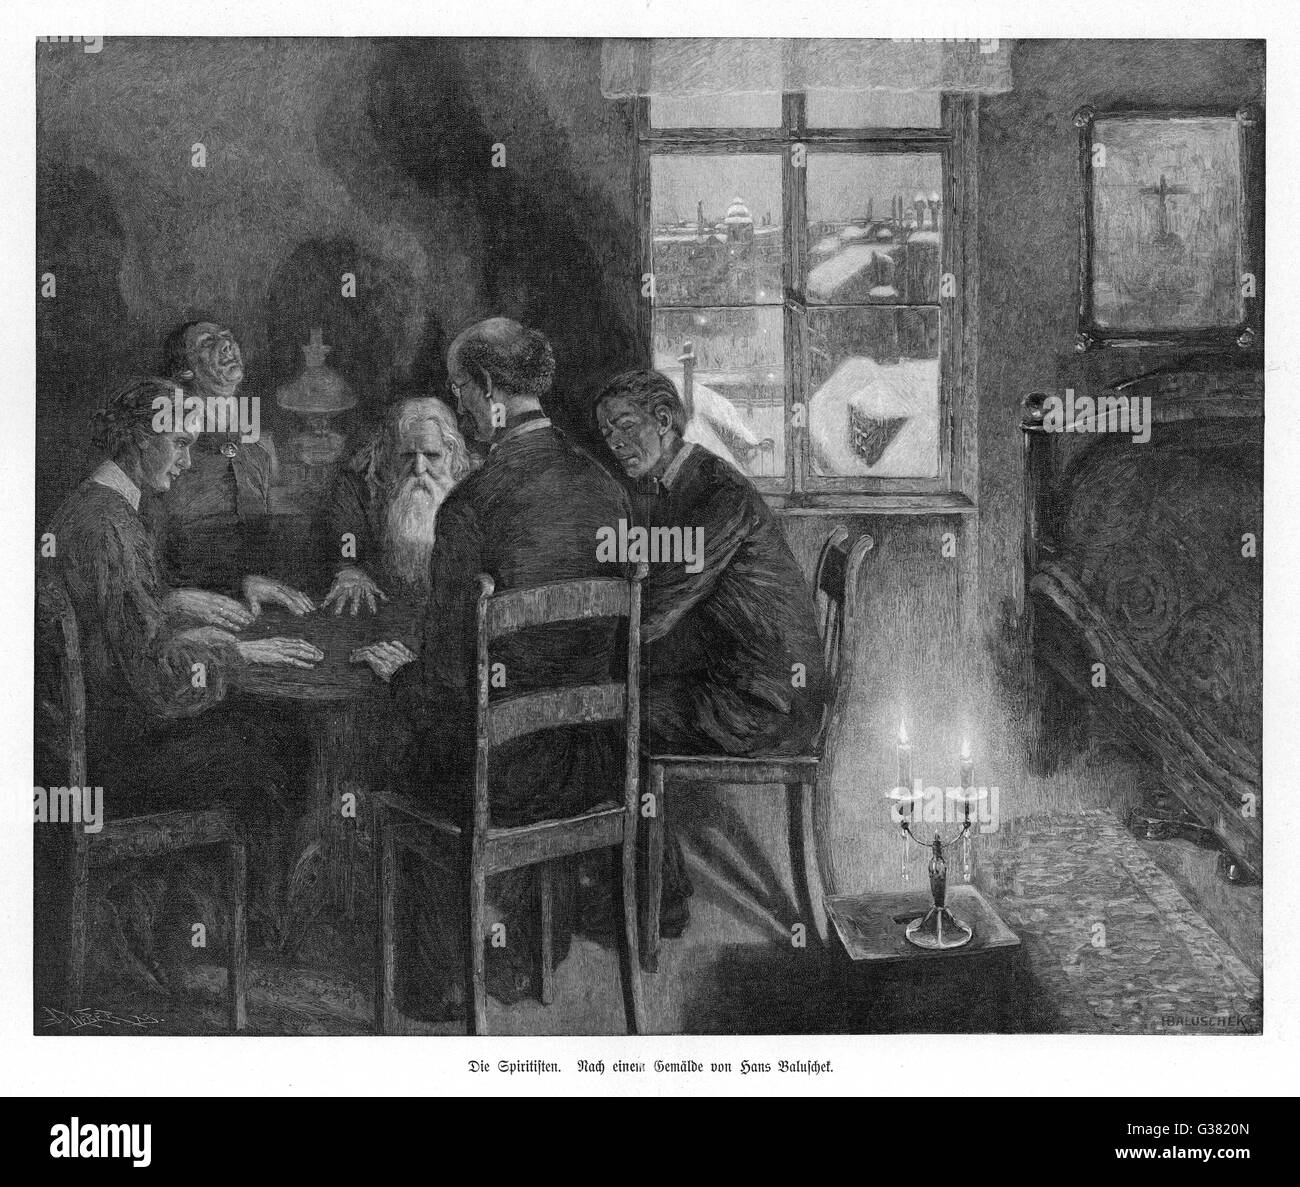 A spirit seance in a garret on  a winter evening in Germany         Date: 1906 - Stock Image